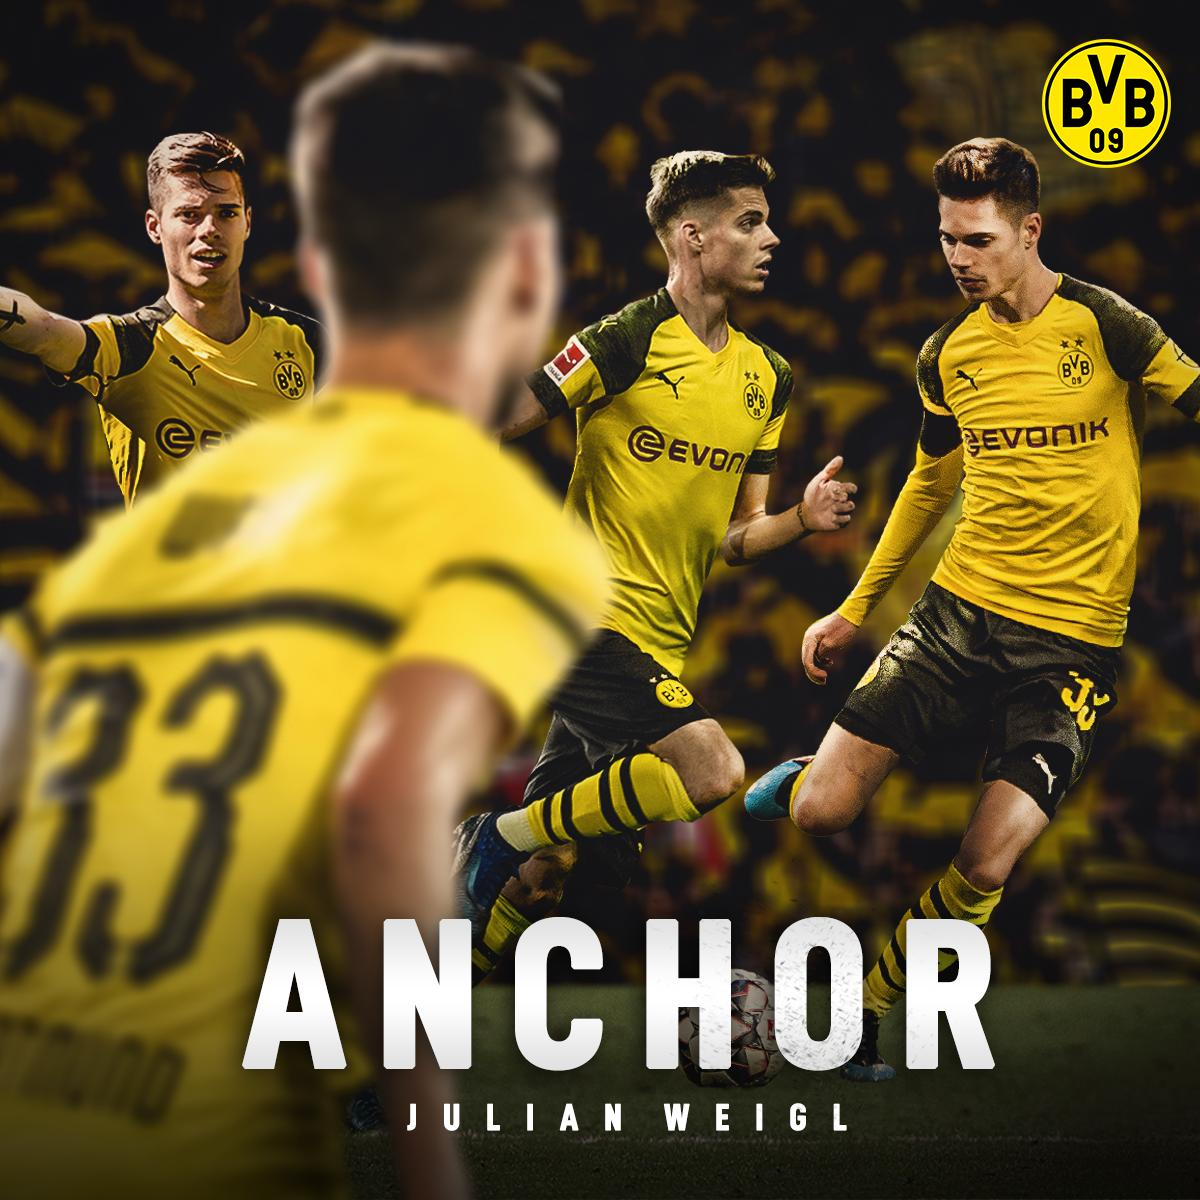 BVB has won all 8 games this season when Julian Weigl has started at defensive midfield ⚓️💪